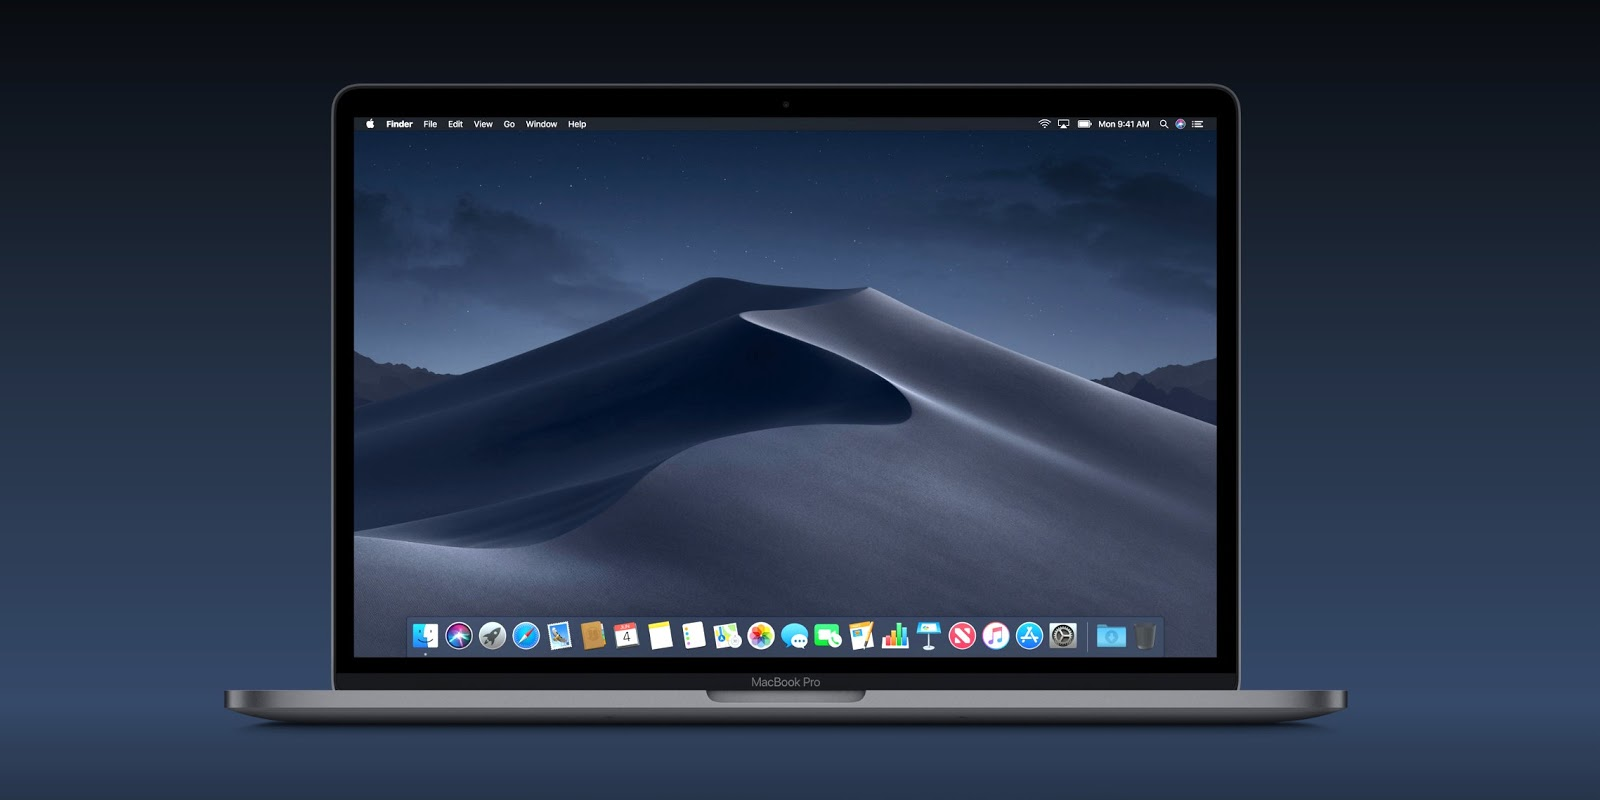 Macos Mojave 10 14 Iso Download Download Macos Mojave For Free Download Free Iso